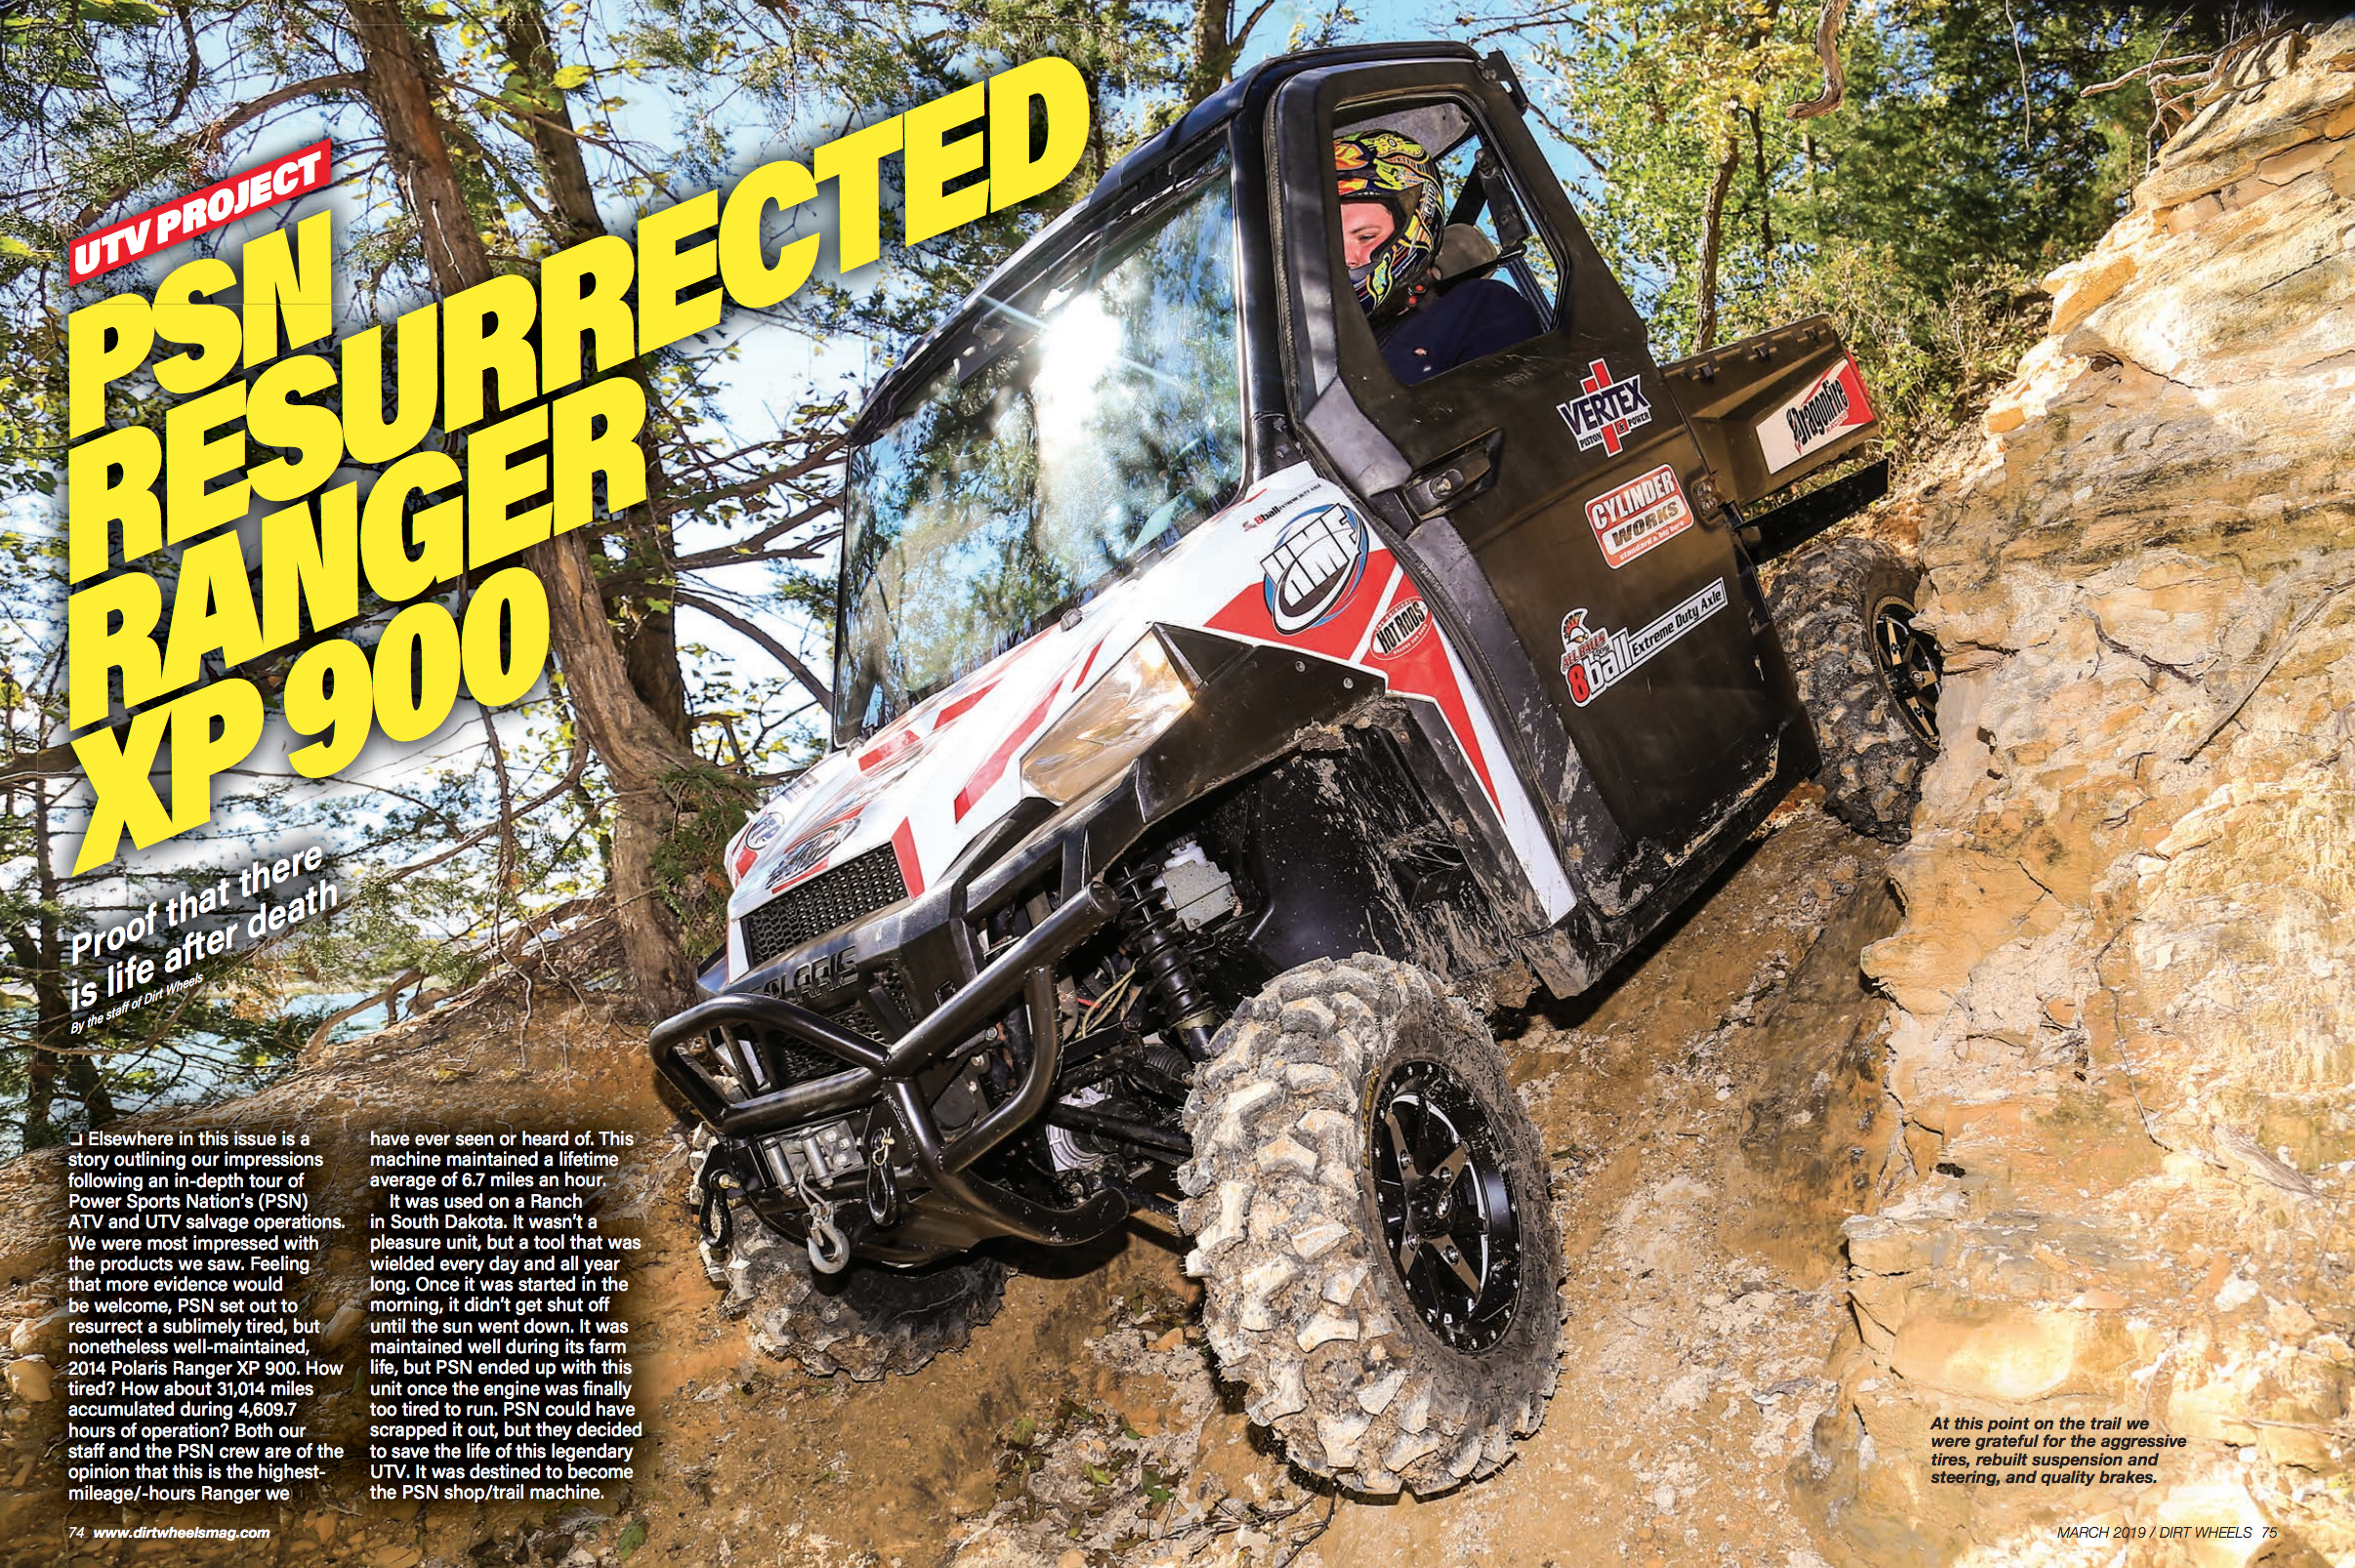 Here is a great story in the March issue of Dirt Wheels we did with PSN.